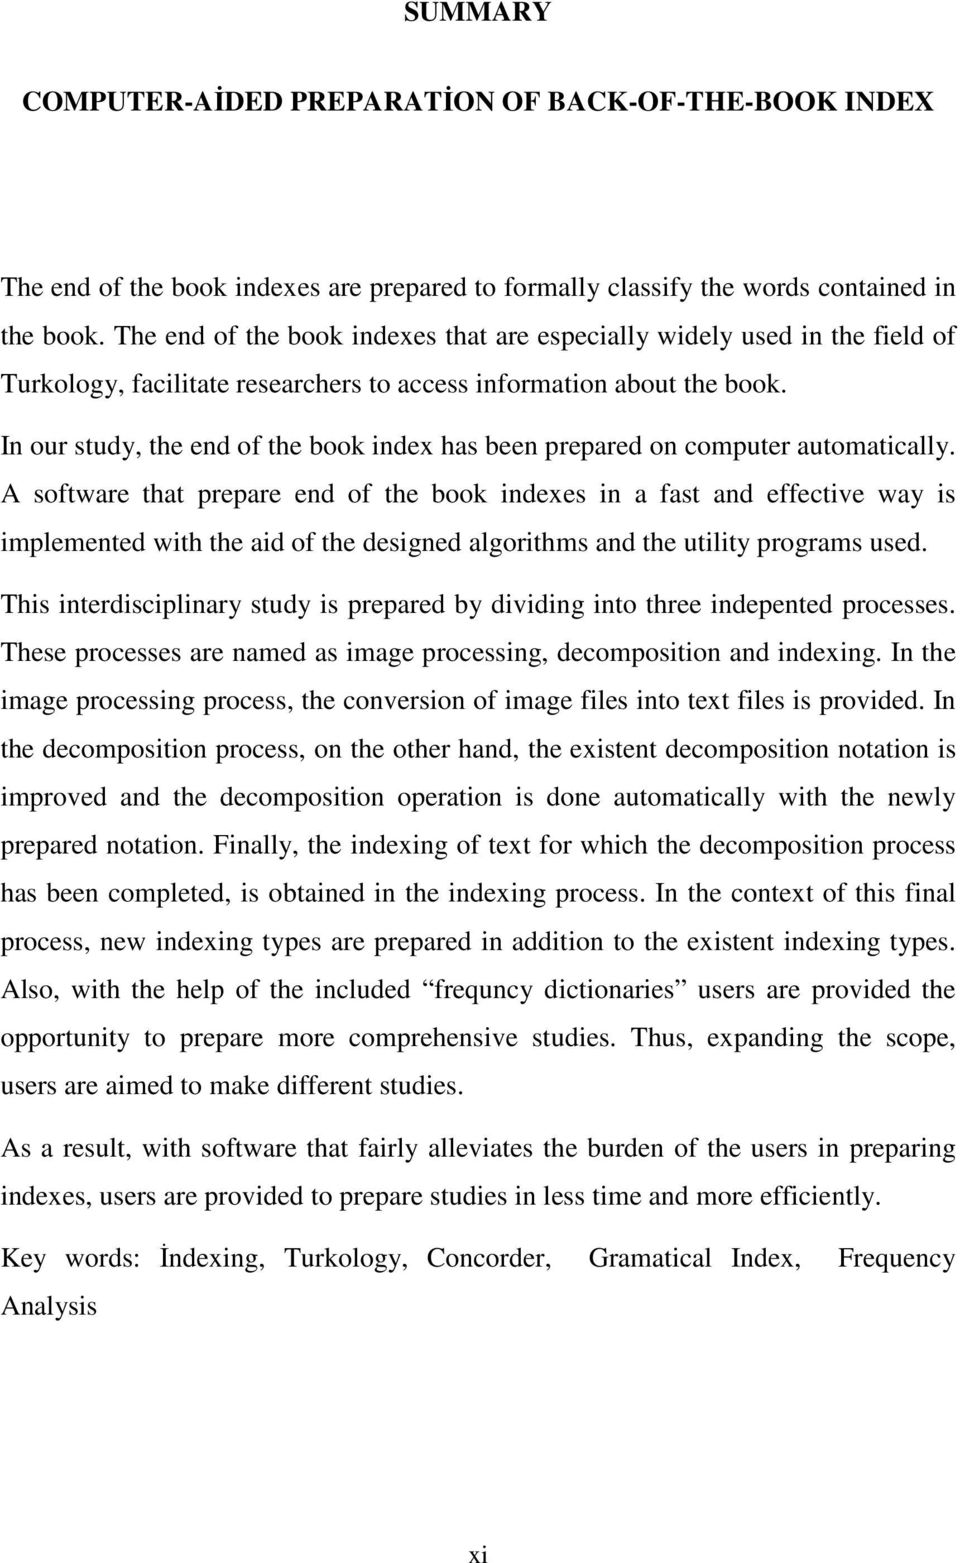 In our study, the end of the book index has been prepared on computer automatically.